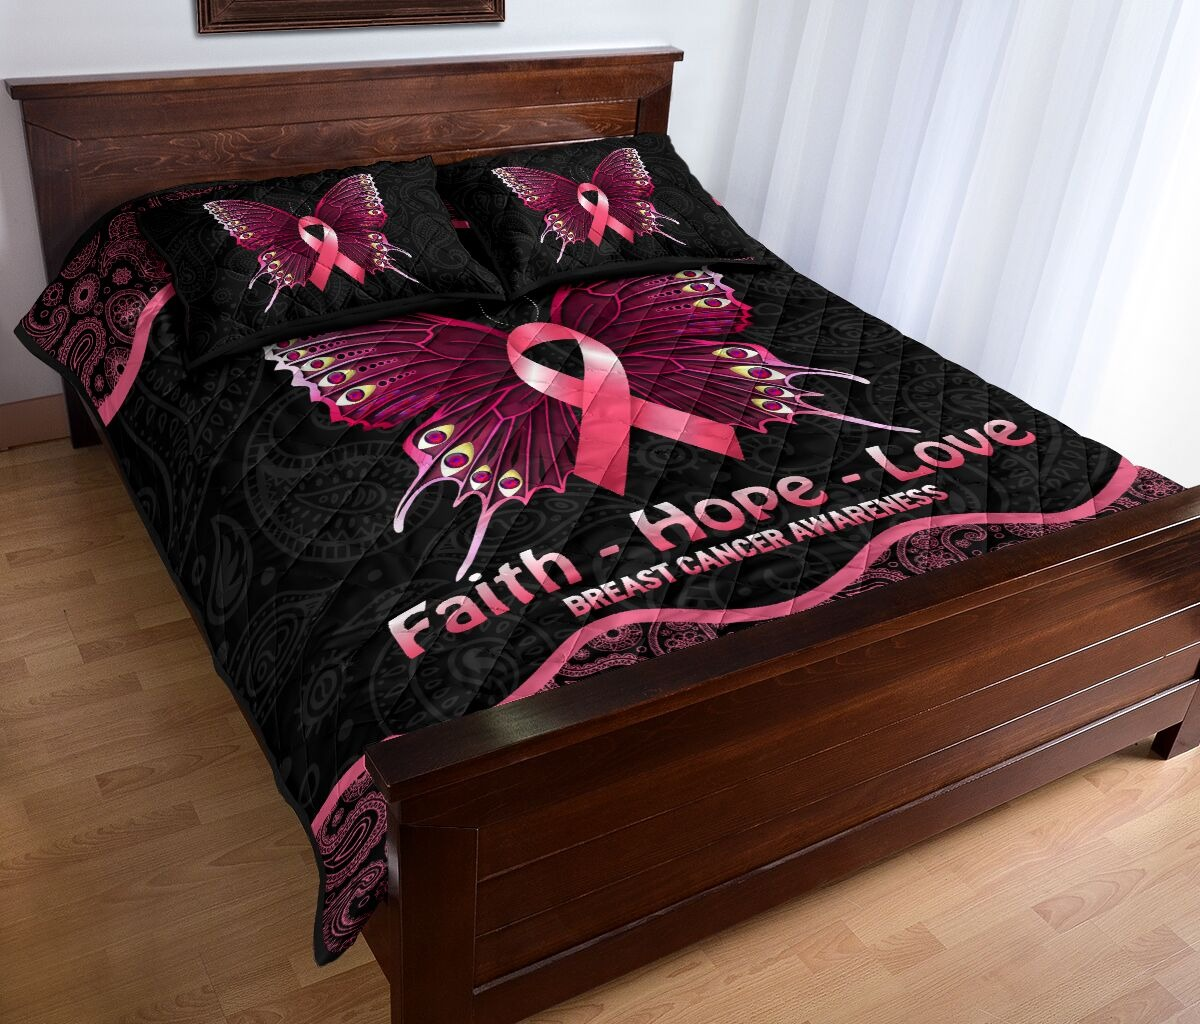 Butterfly faith hope love breast cancer awareness quilt bedding set2